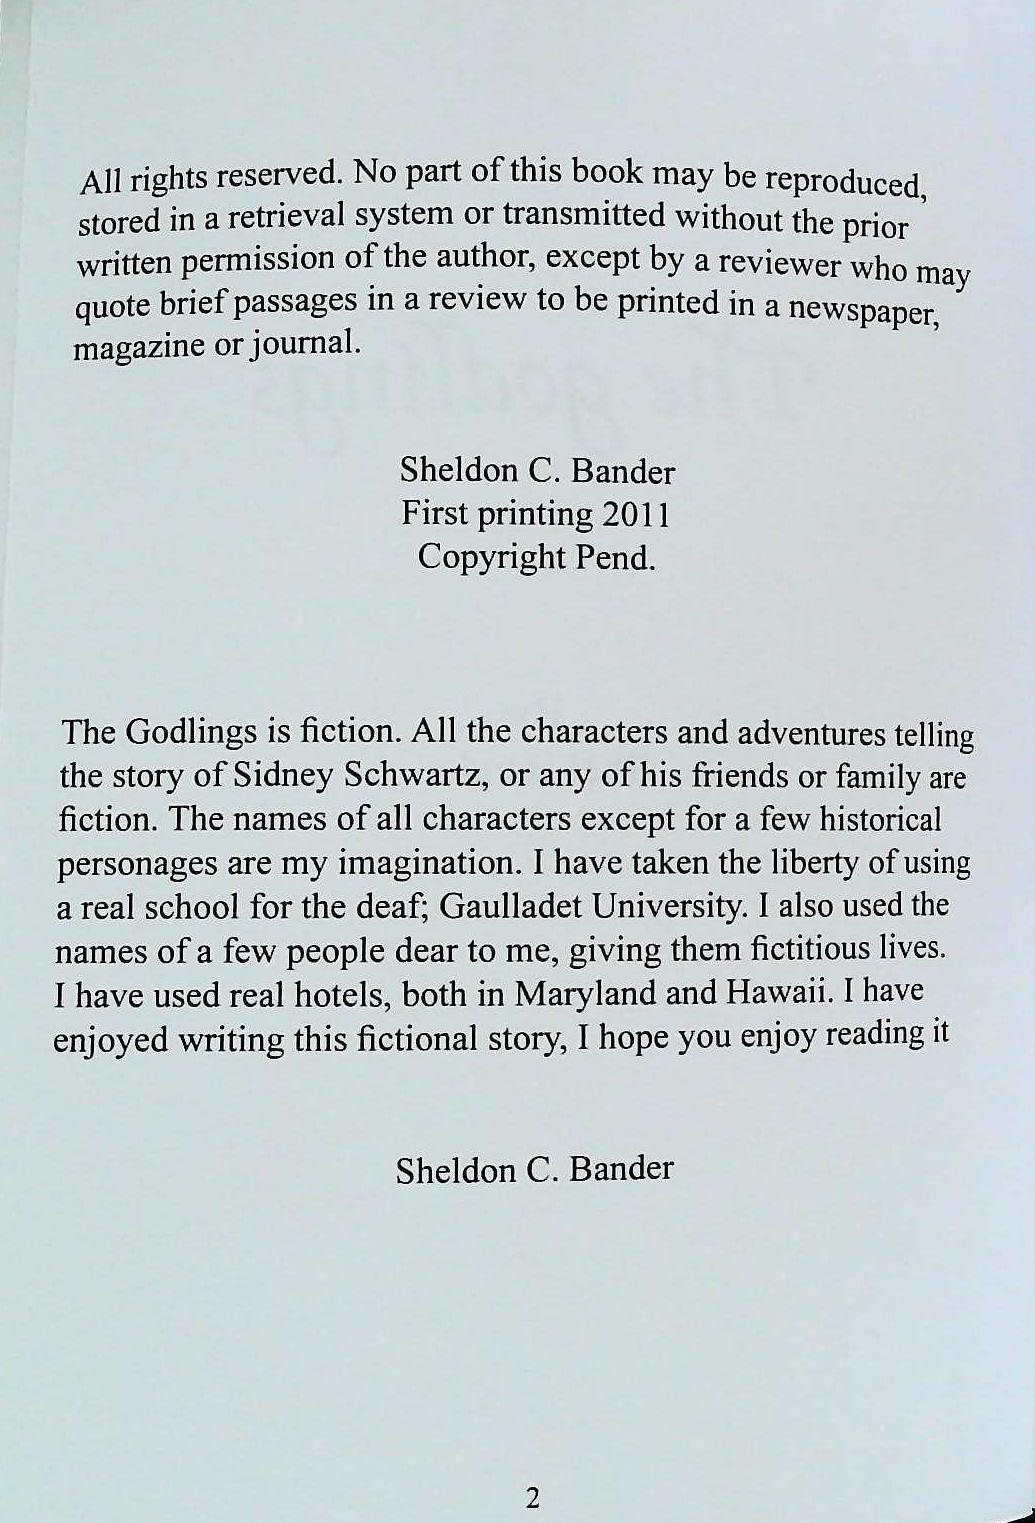 The Godlings paperback book by Sheldon C. Bander. First Edition signed by Author. Published 2011 - Image 4 of 4